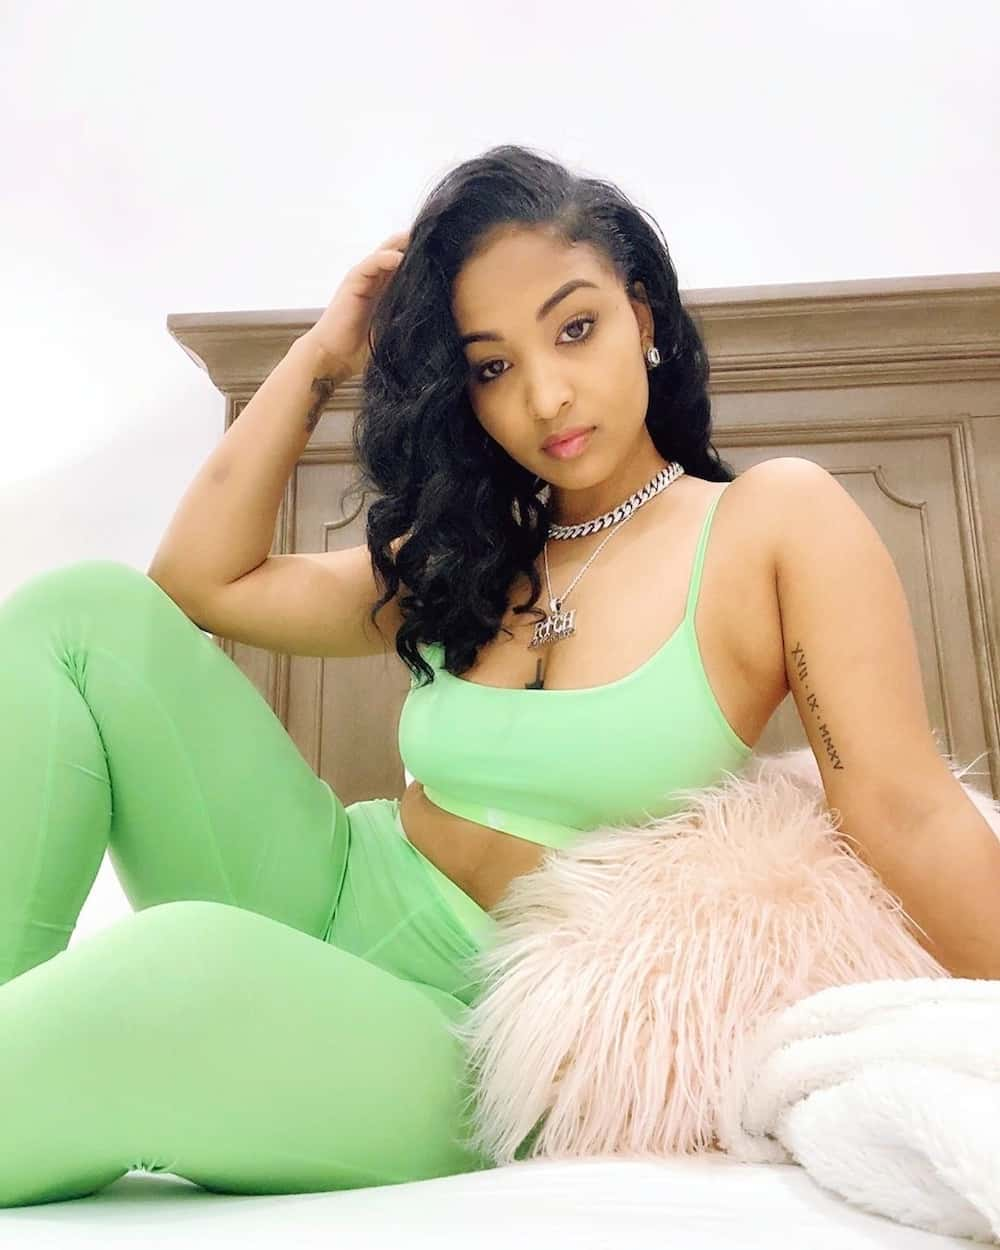 Shenseea Ready For New Lover